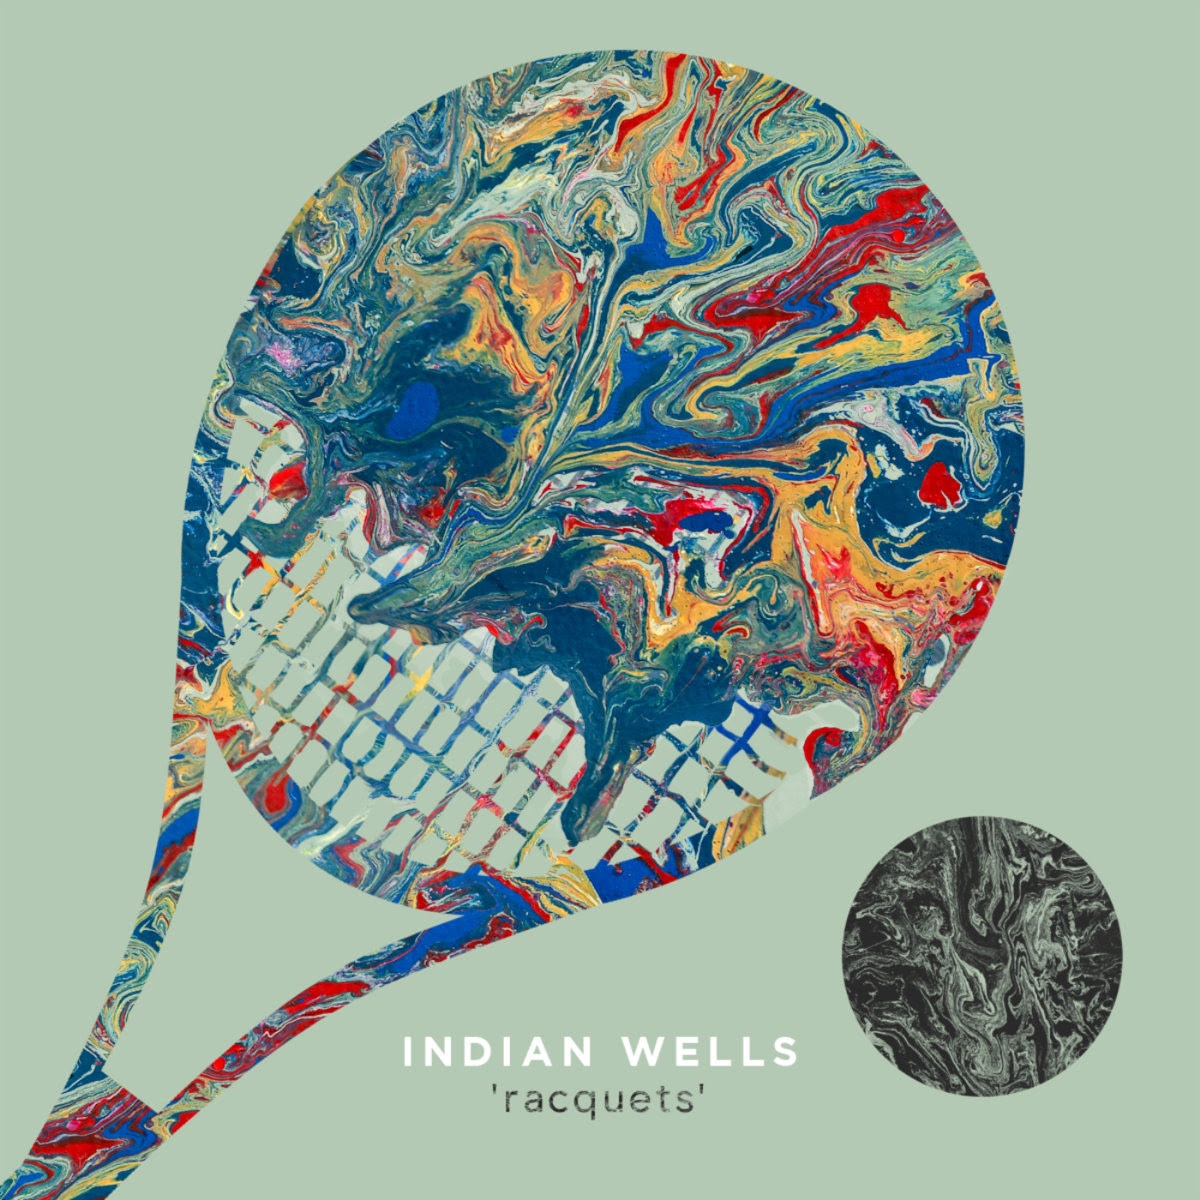 indianwells-racquets